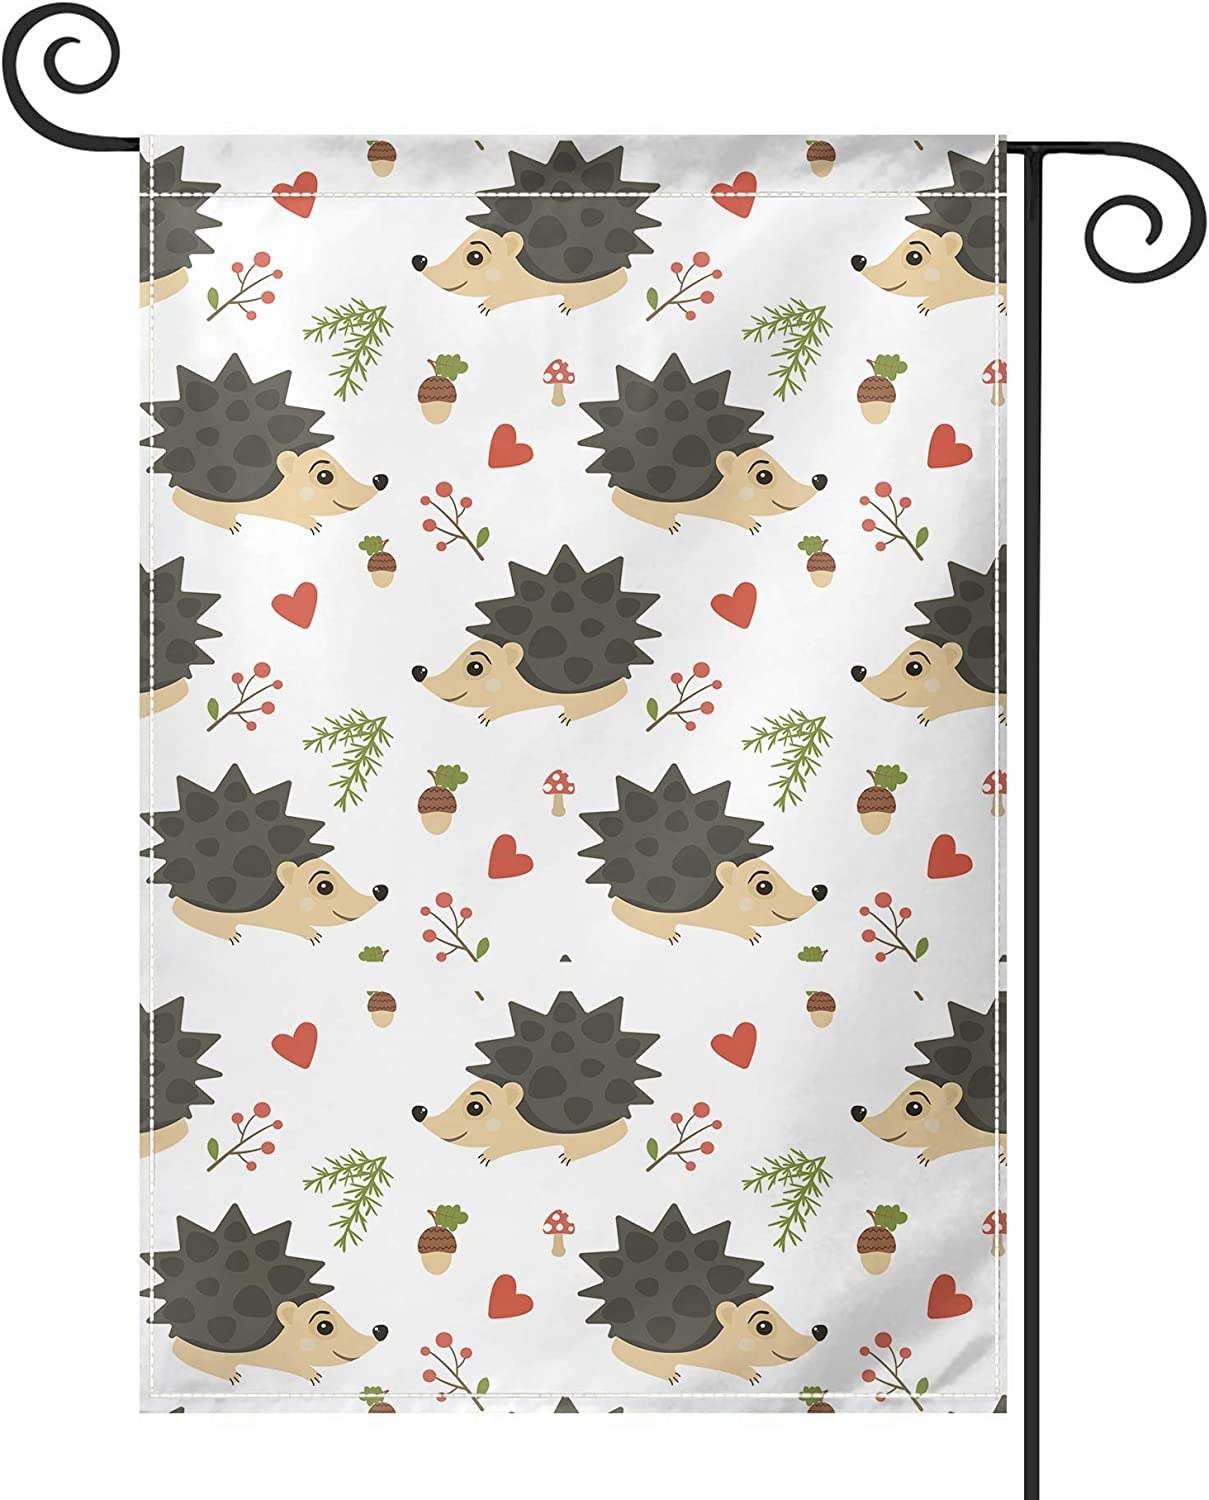 PRUNUS Hedgehog Garden Flag, Vertical Double Sided Premium Material Holiday Weather Resistant Decorative Lawn Animal House Flags Outdoor Decor 28W by 40H Inch Black